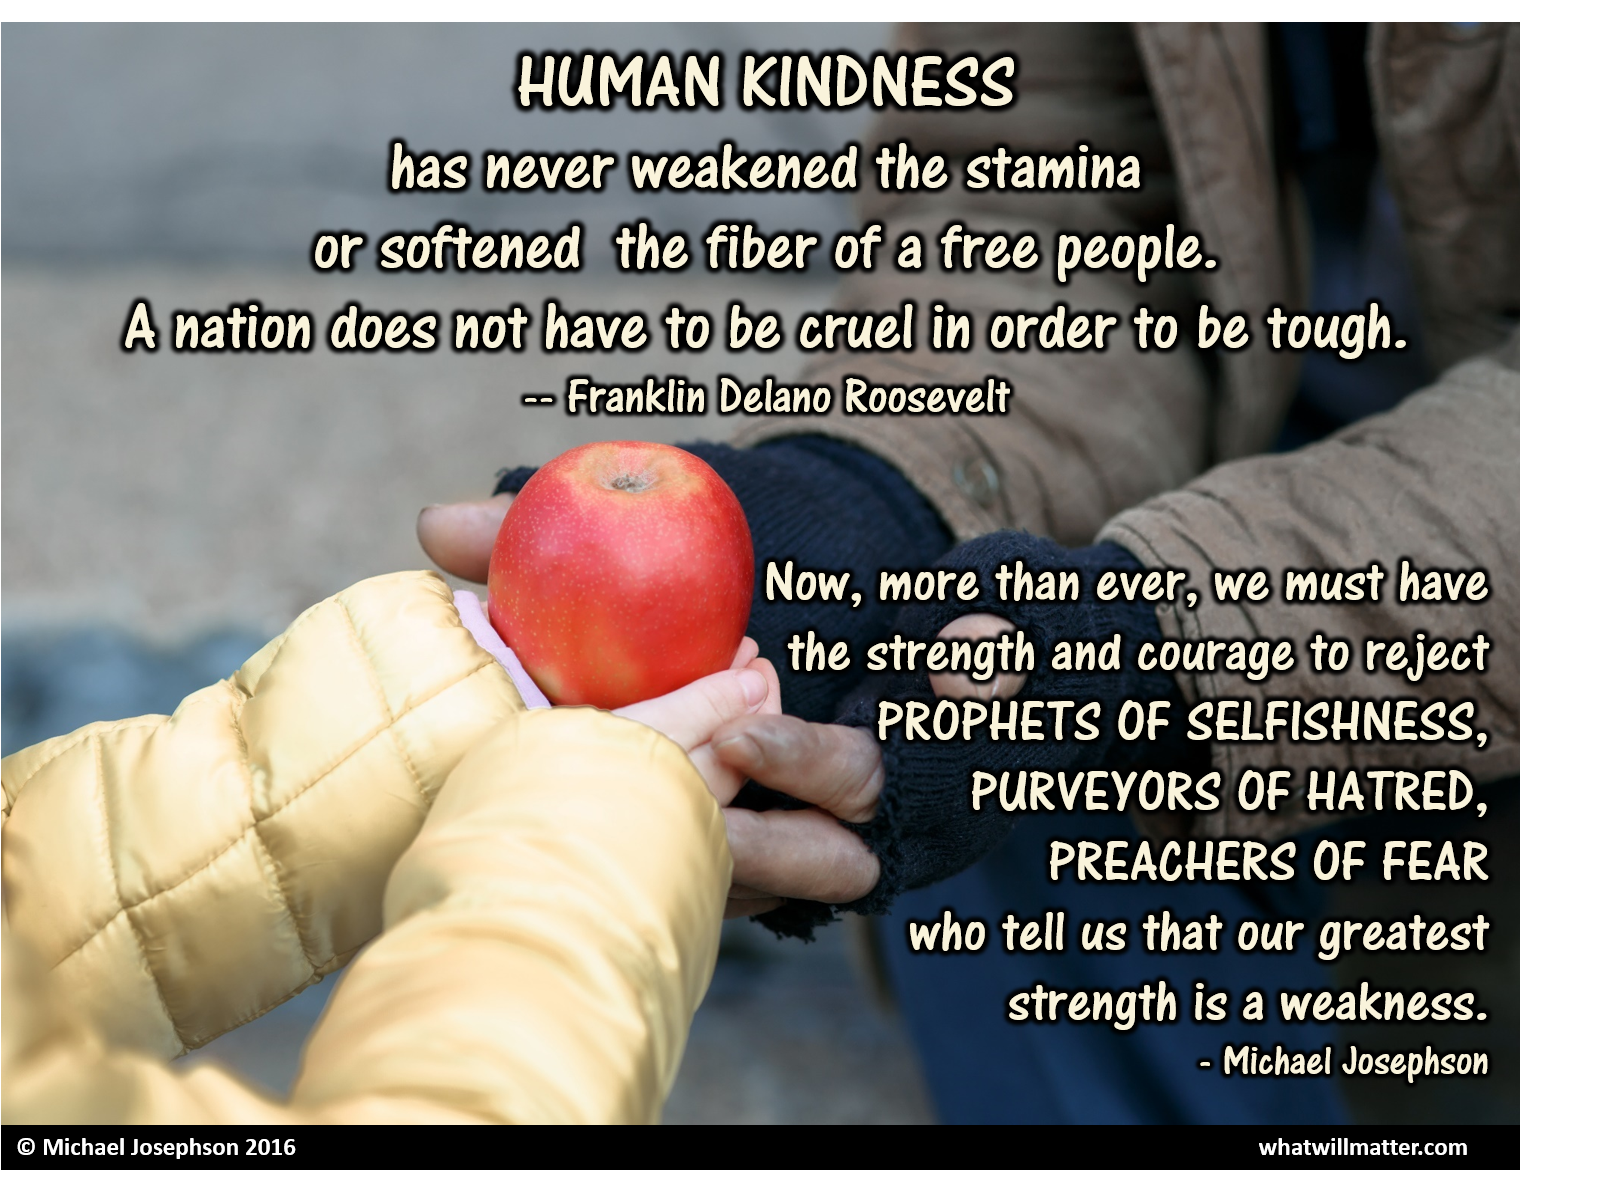 timely observation now more than ever we must have the strength 00 kindness greatest strength